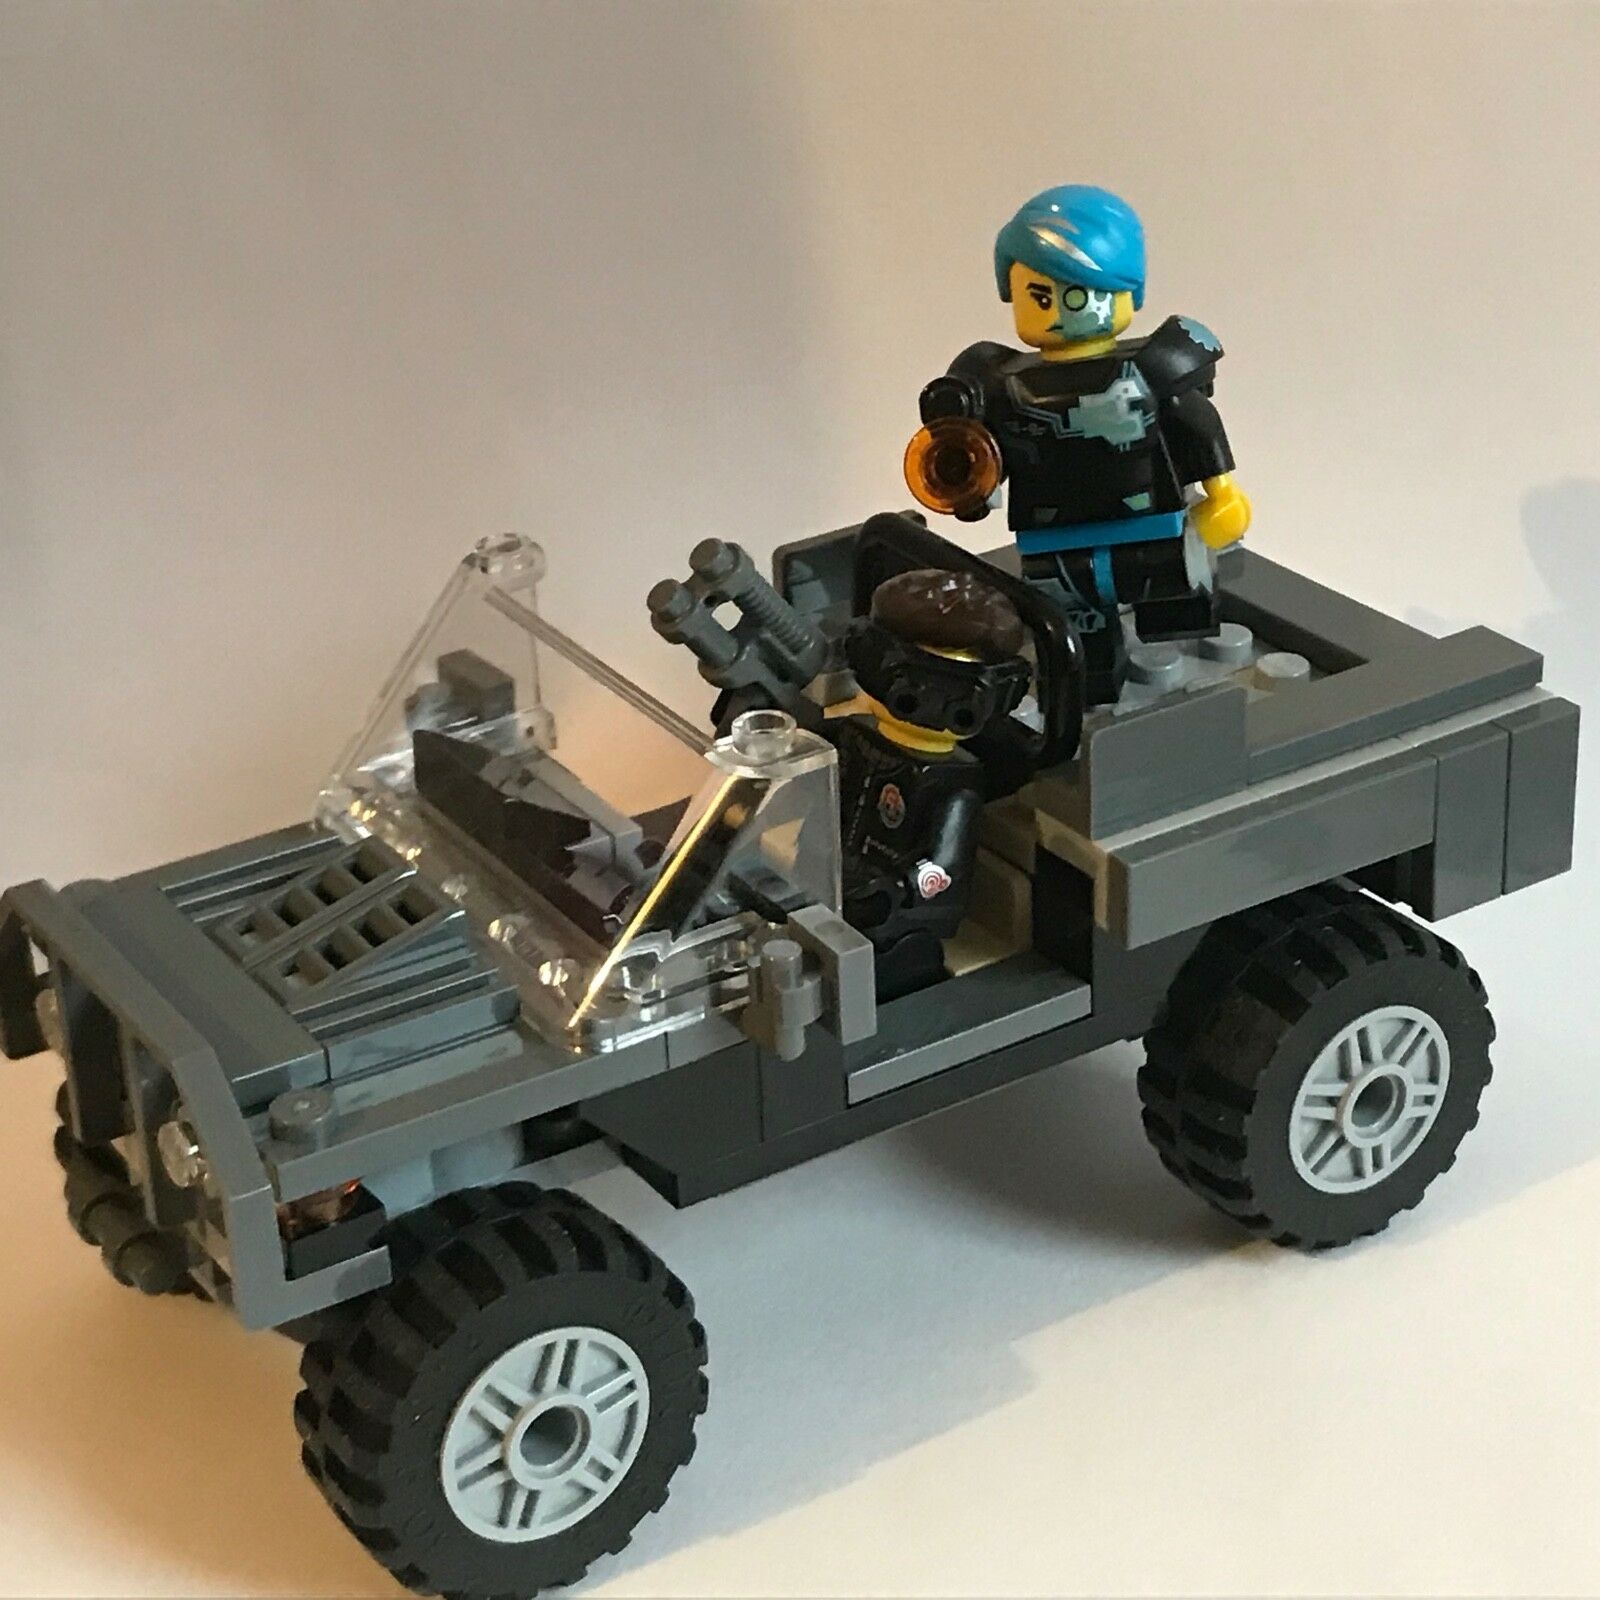 LEGO - special forces EXPEDITION CAR + 2 x commando figures - jeep - my design